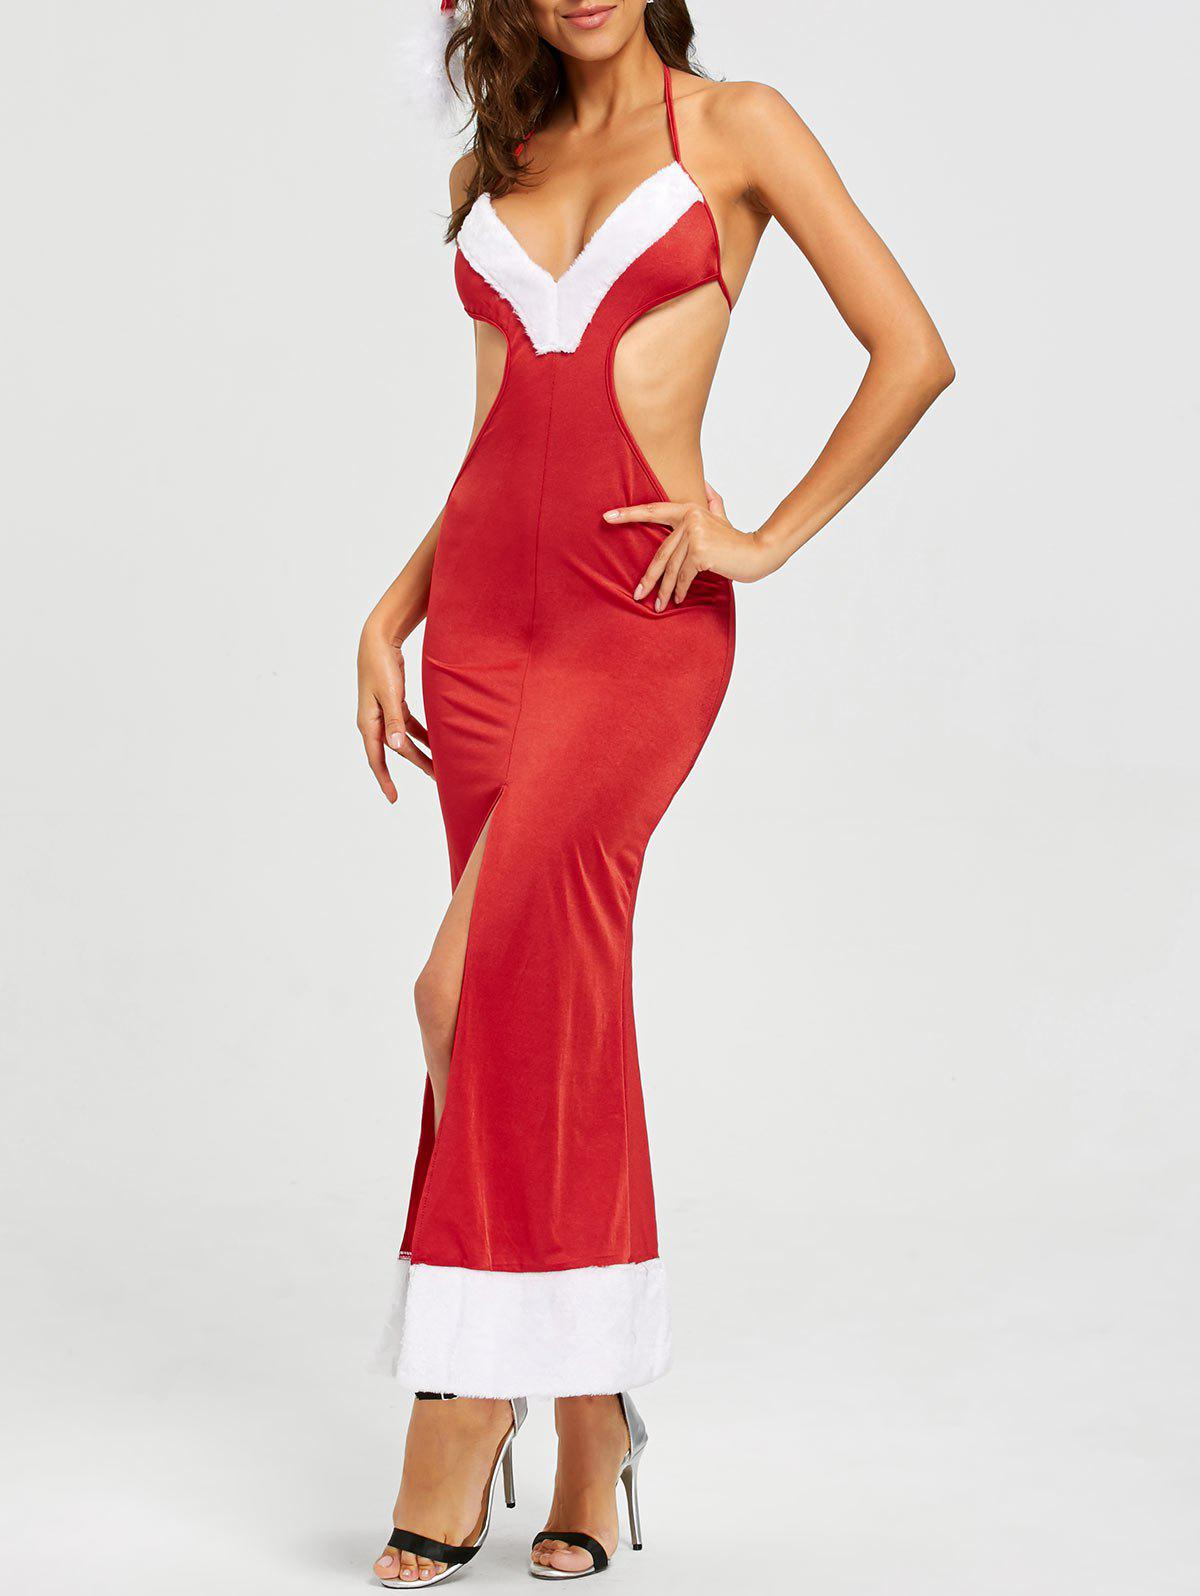 Slit Christmas Dress Costume - RED ONE SIZE